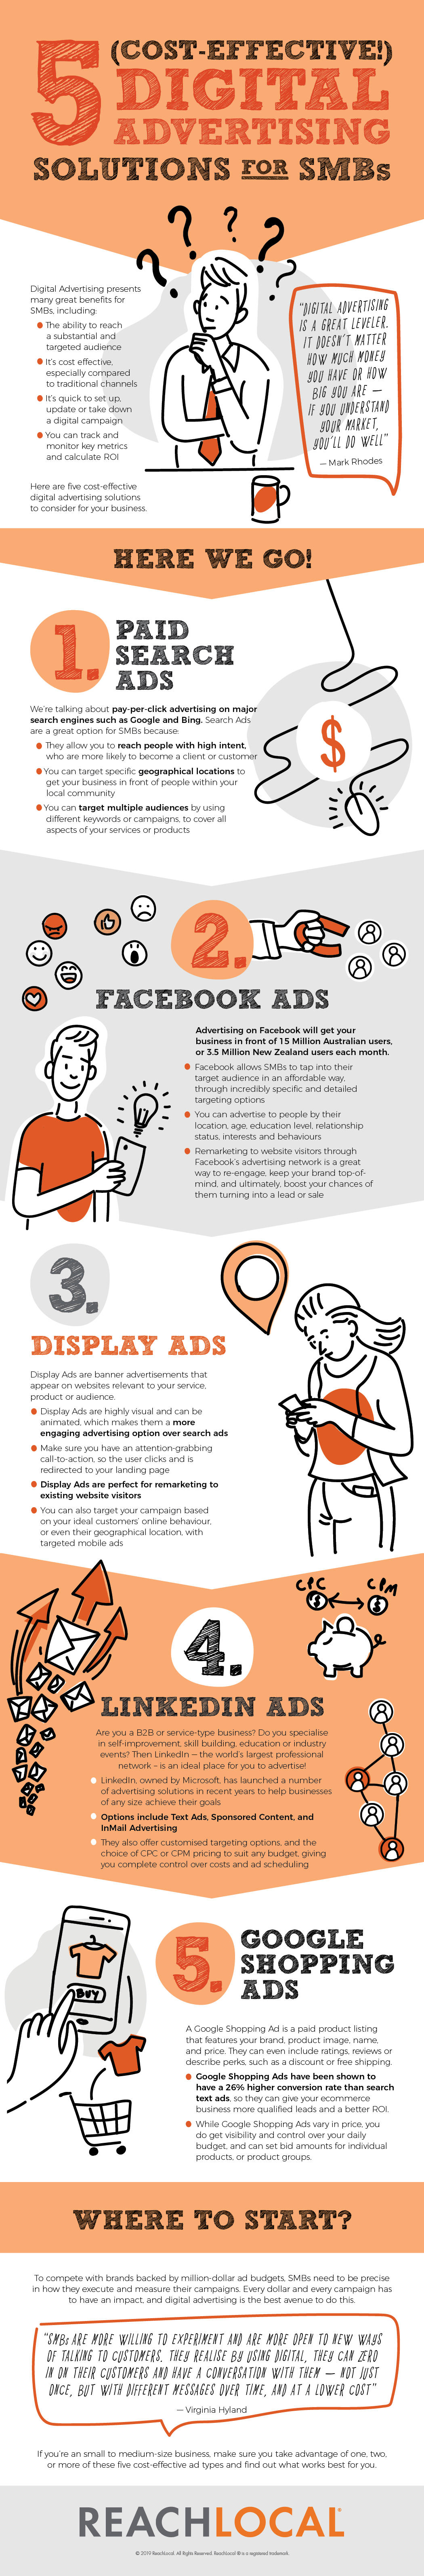 5 Cost-Effective Digital Advertising Solutions for SMBs